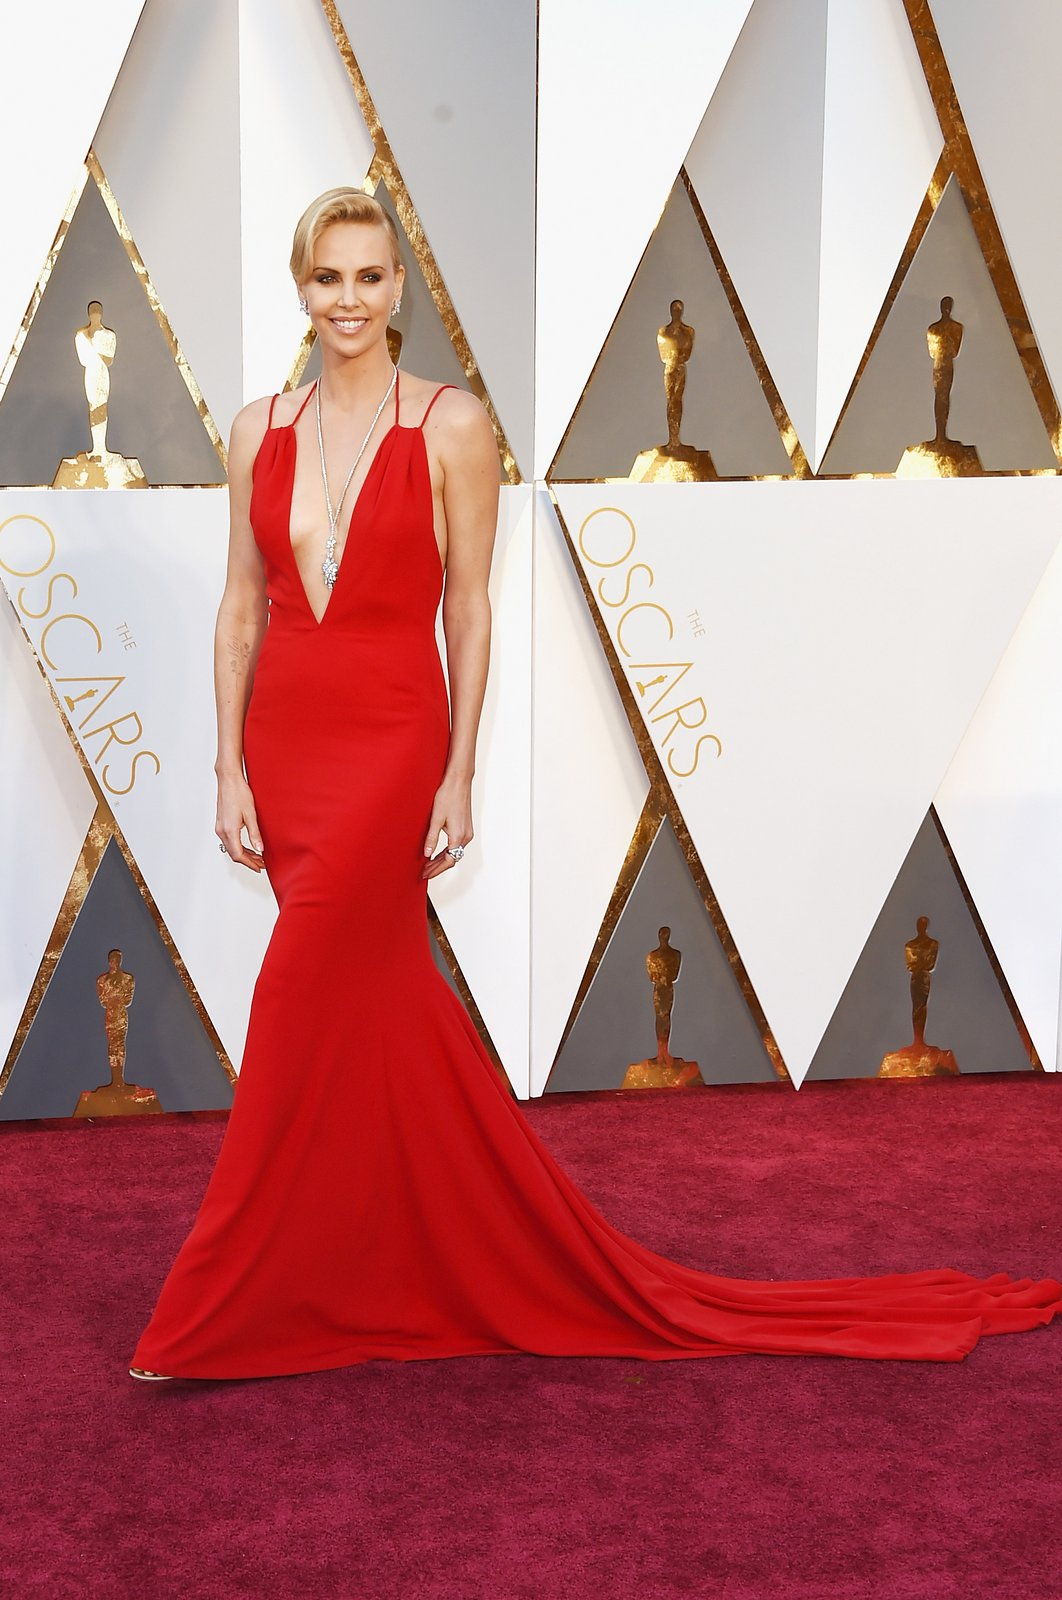 charlize-theron-oscars-red-carpet-2016.jpg